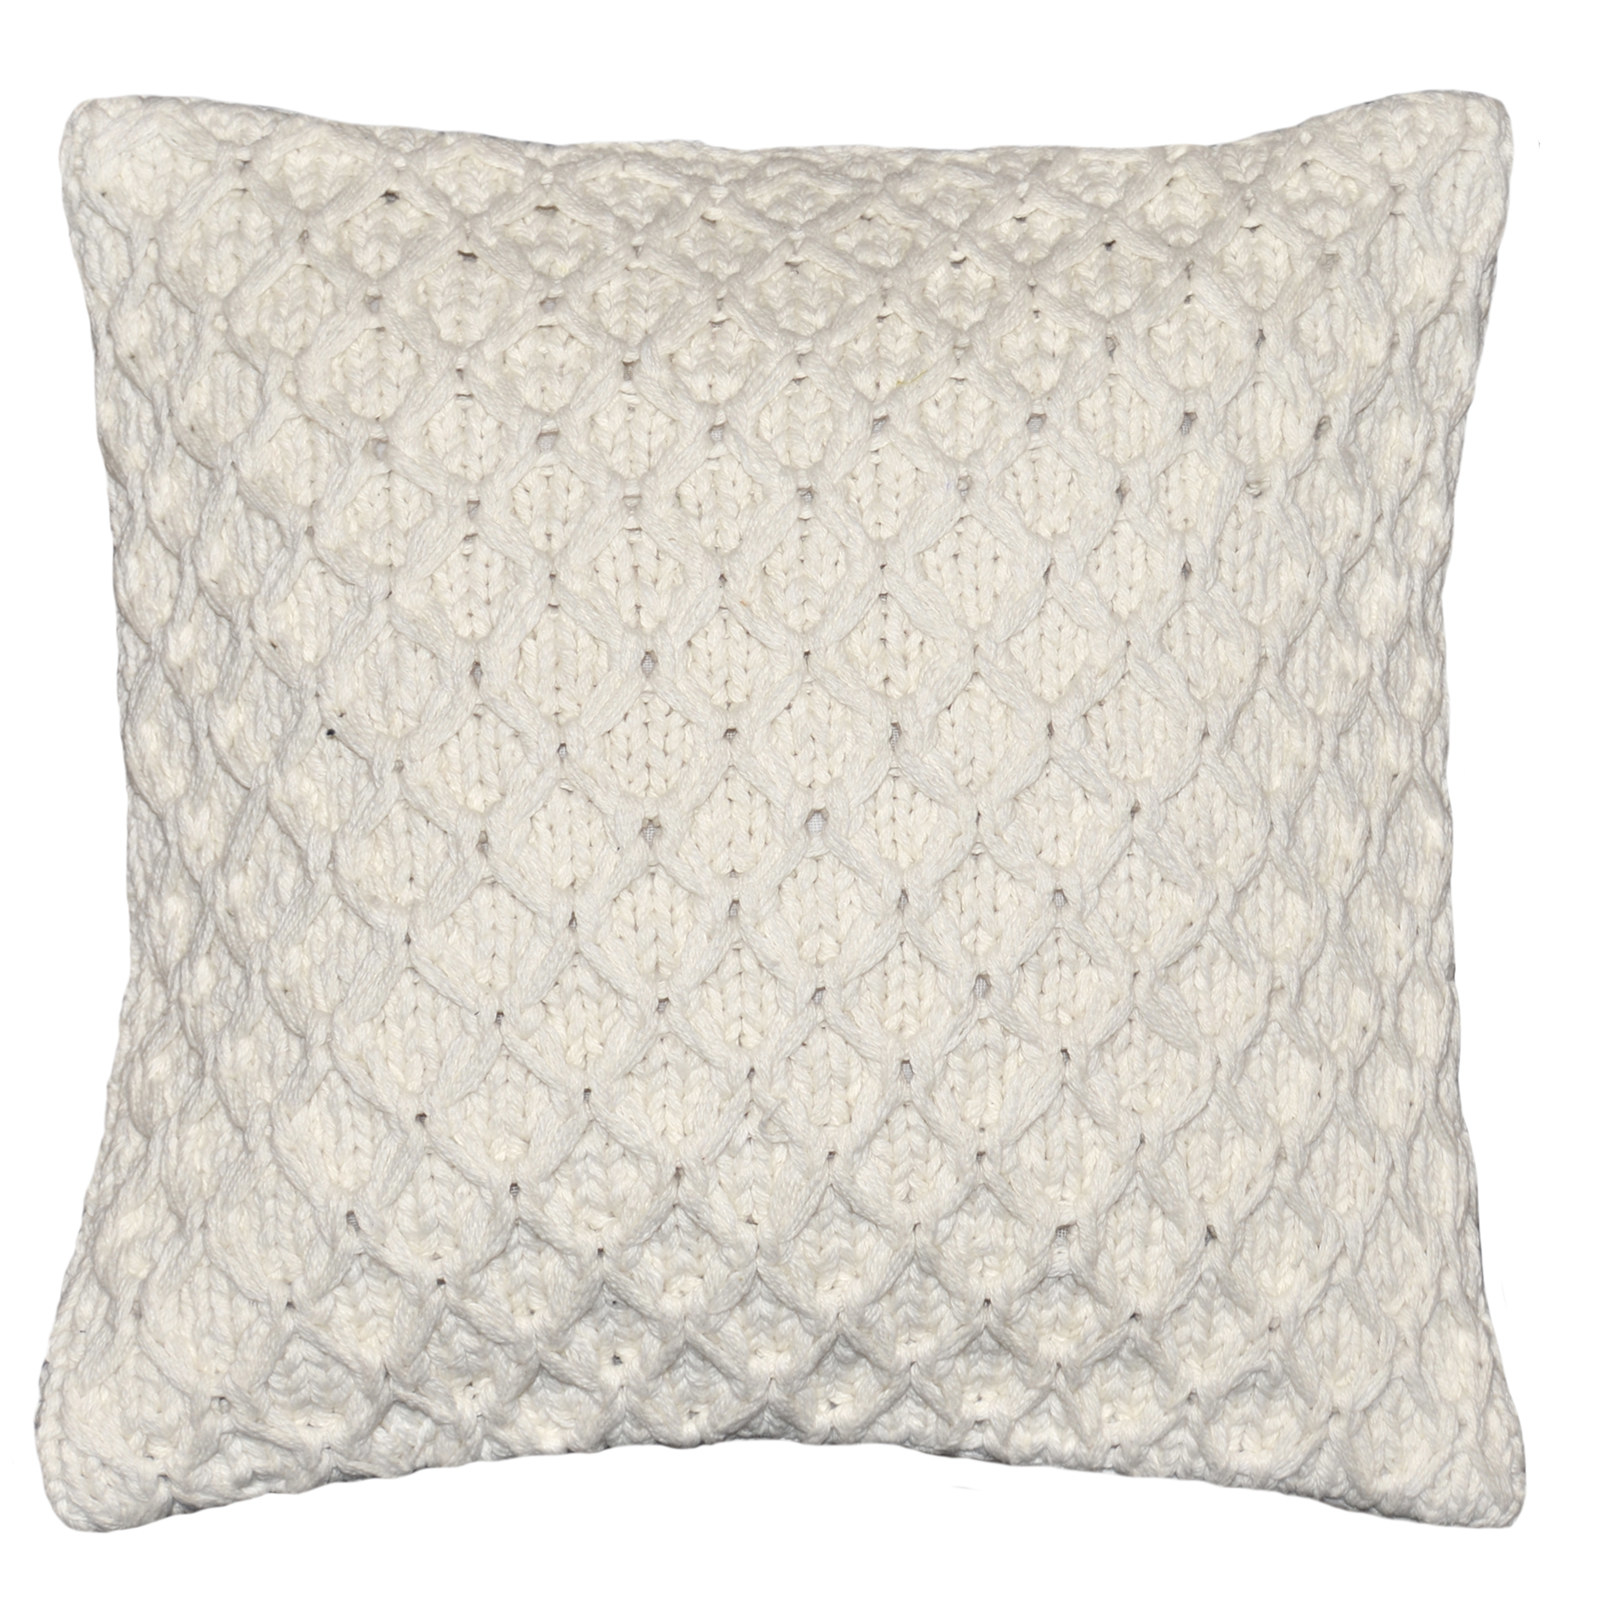 22 Of The Best Throw Pillows You Can Get At Walmart